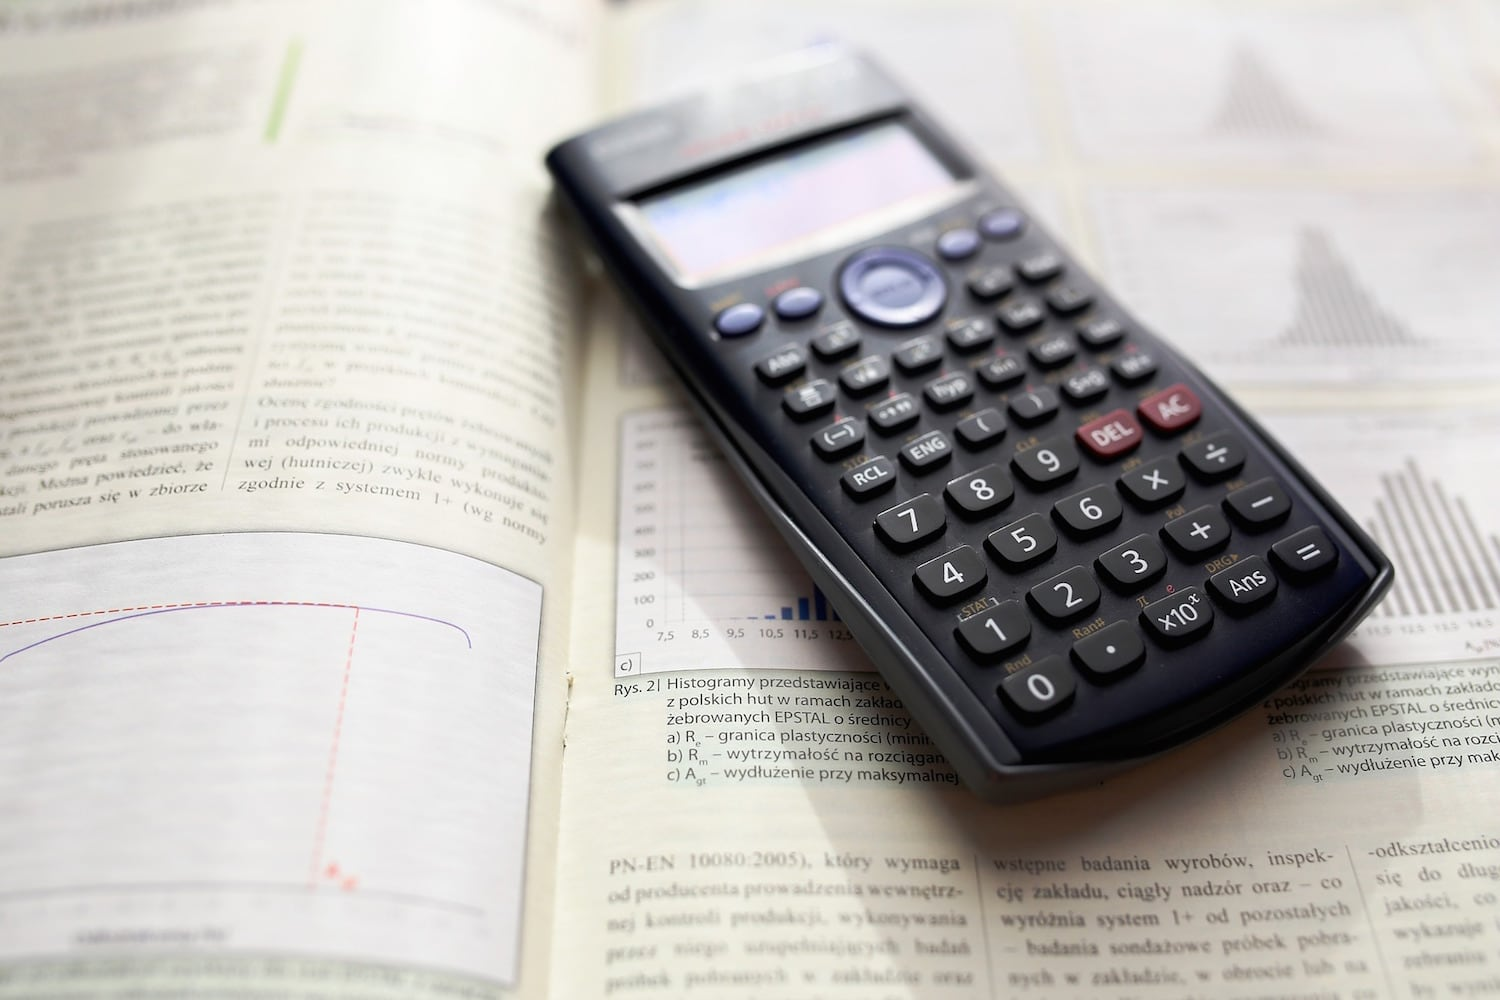 A graphing calculator sitting on an open page in a math textbook.